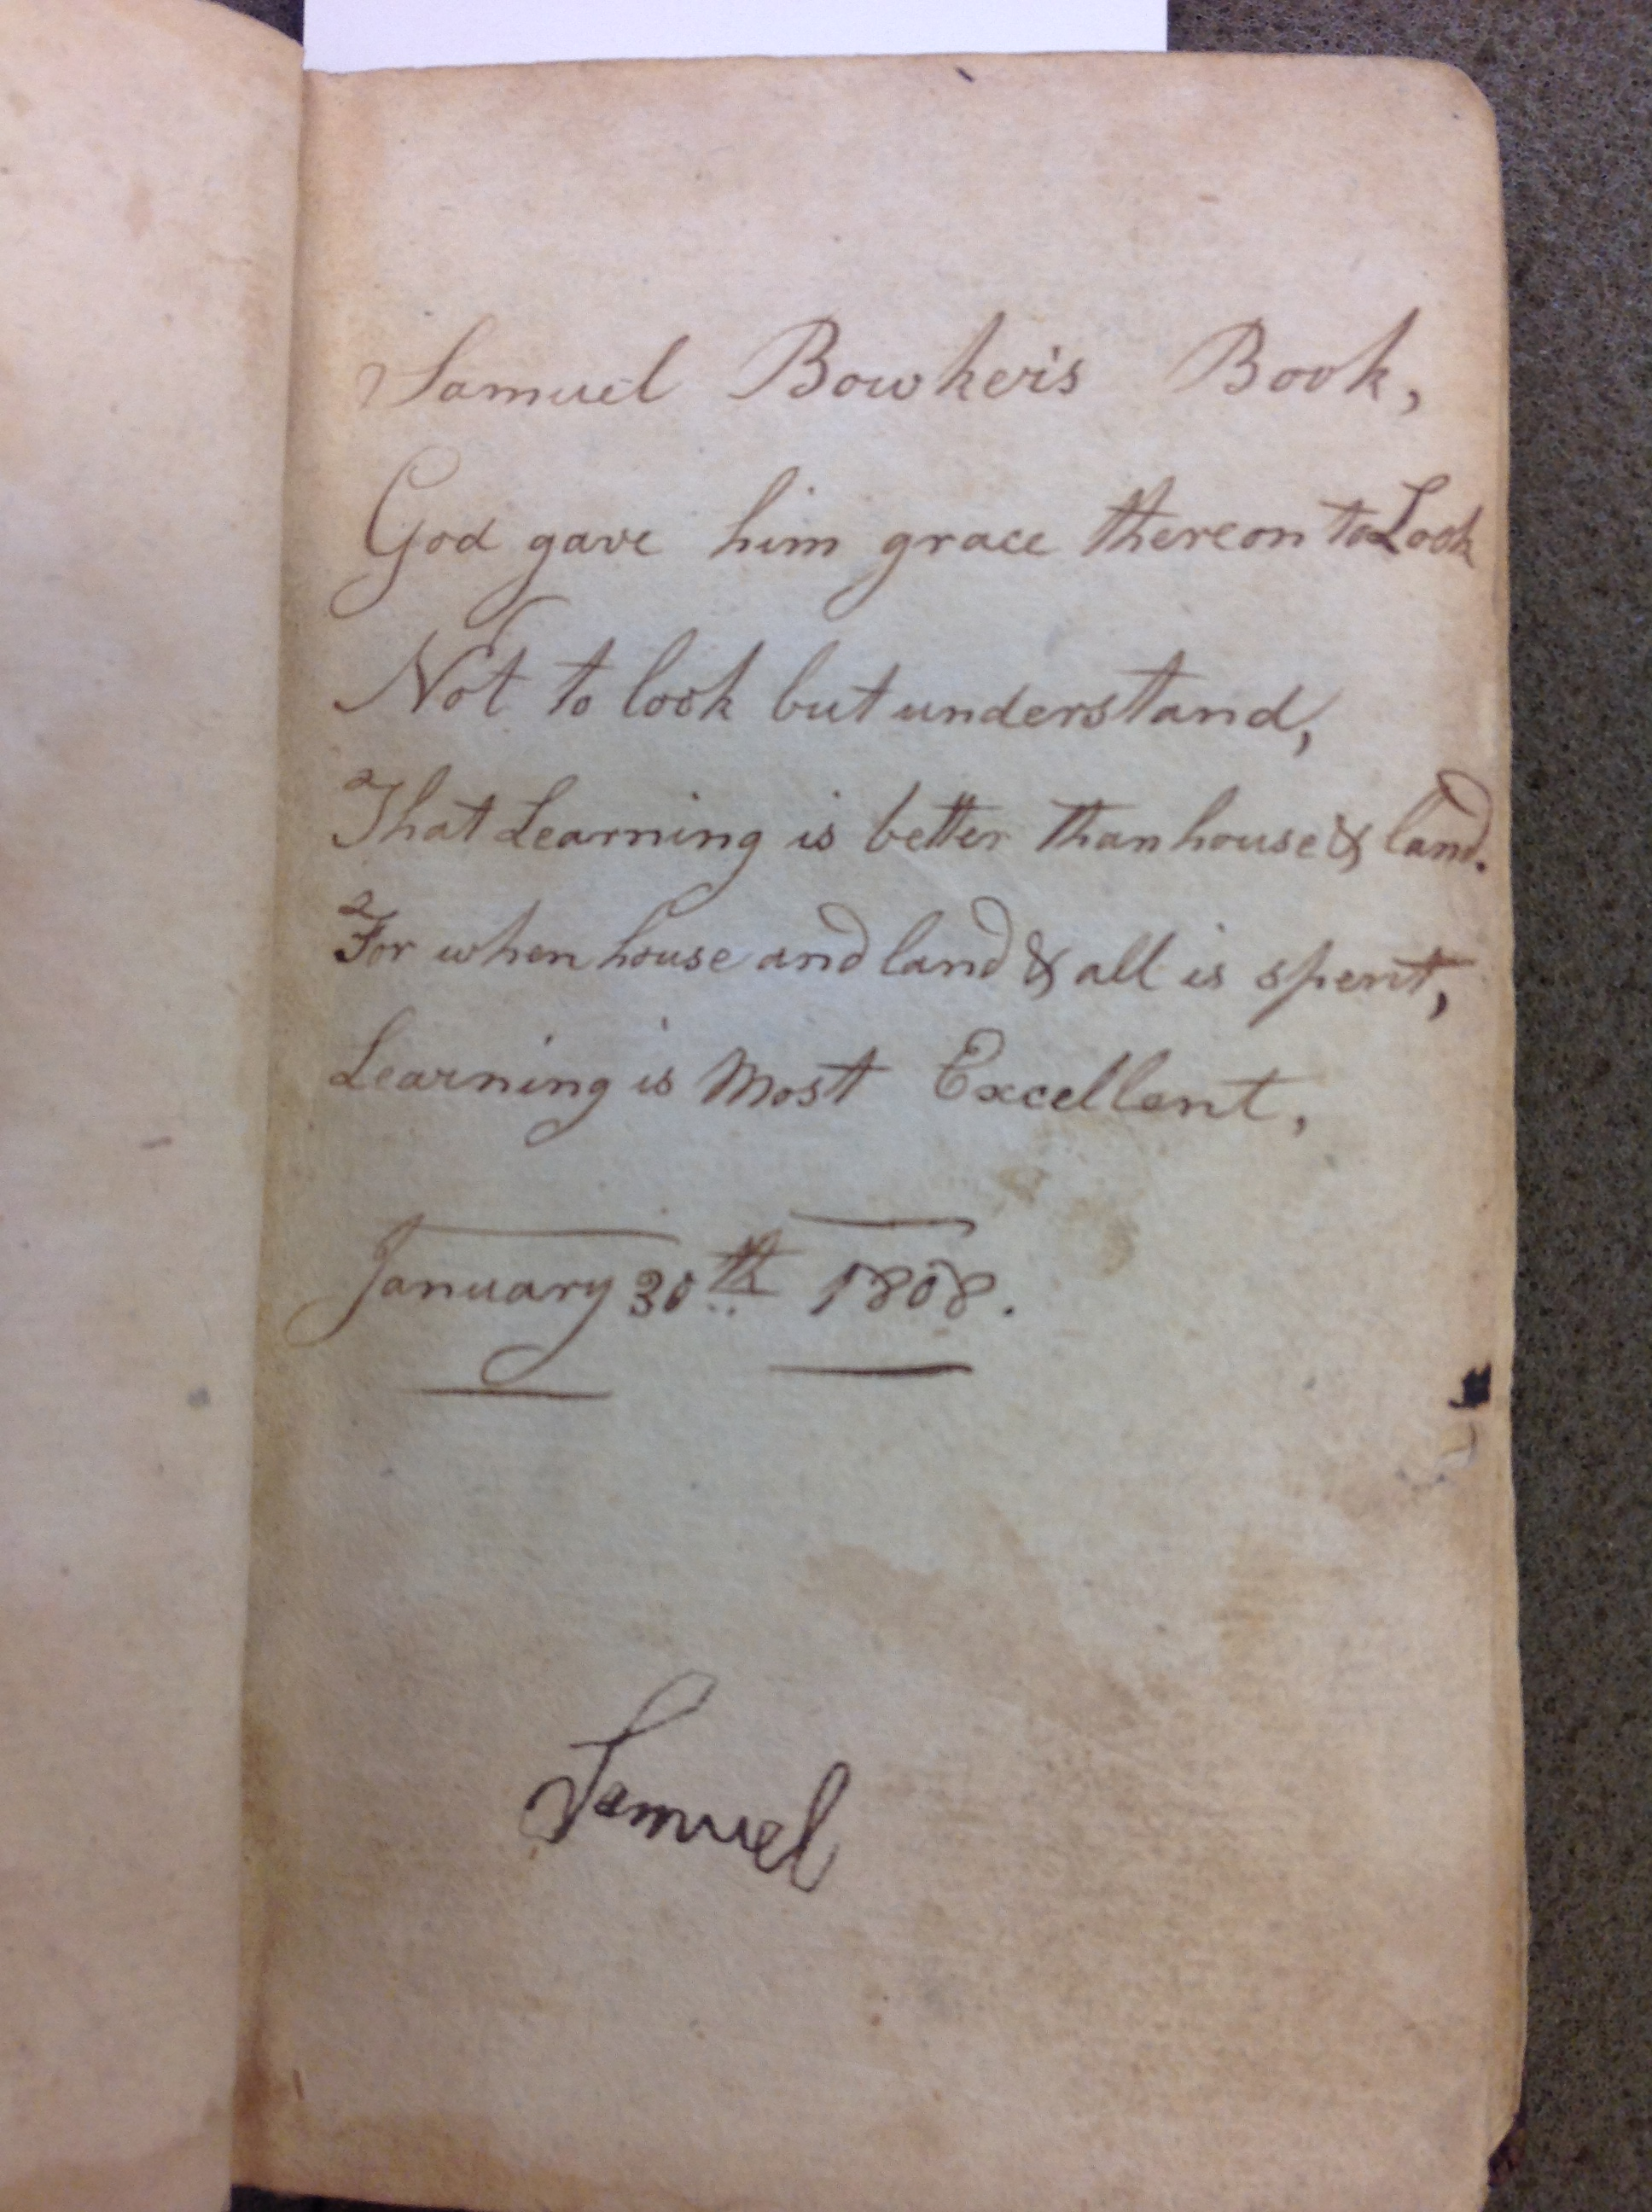 "Flyleaf rhyme: ""Samuel Bowker's book, God gave him grace therein to look. Not to look but understand, that learning is better than house & land. For when house and land and all is spent, learning is most excellent. January 30th 1808."""